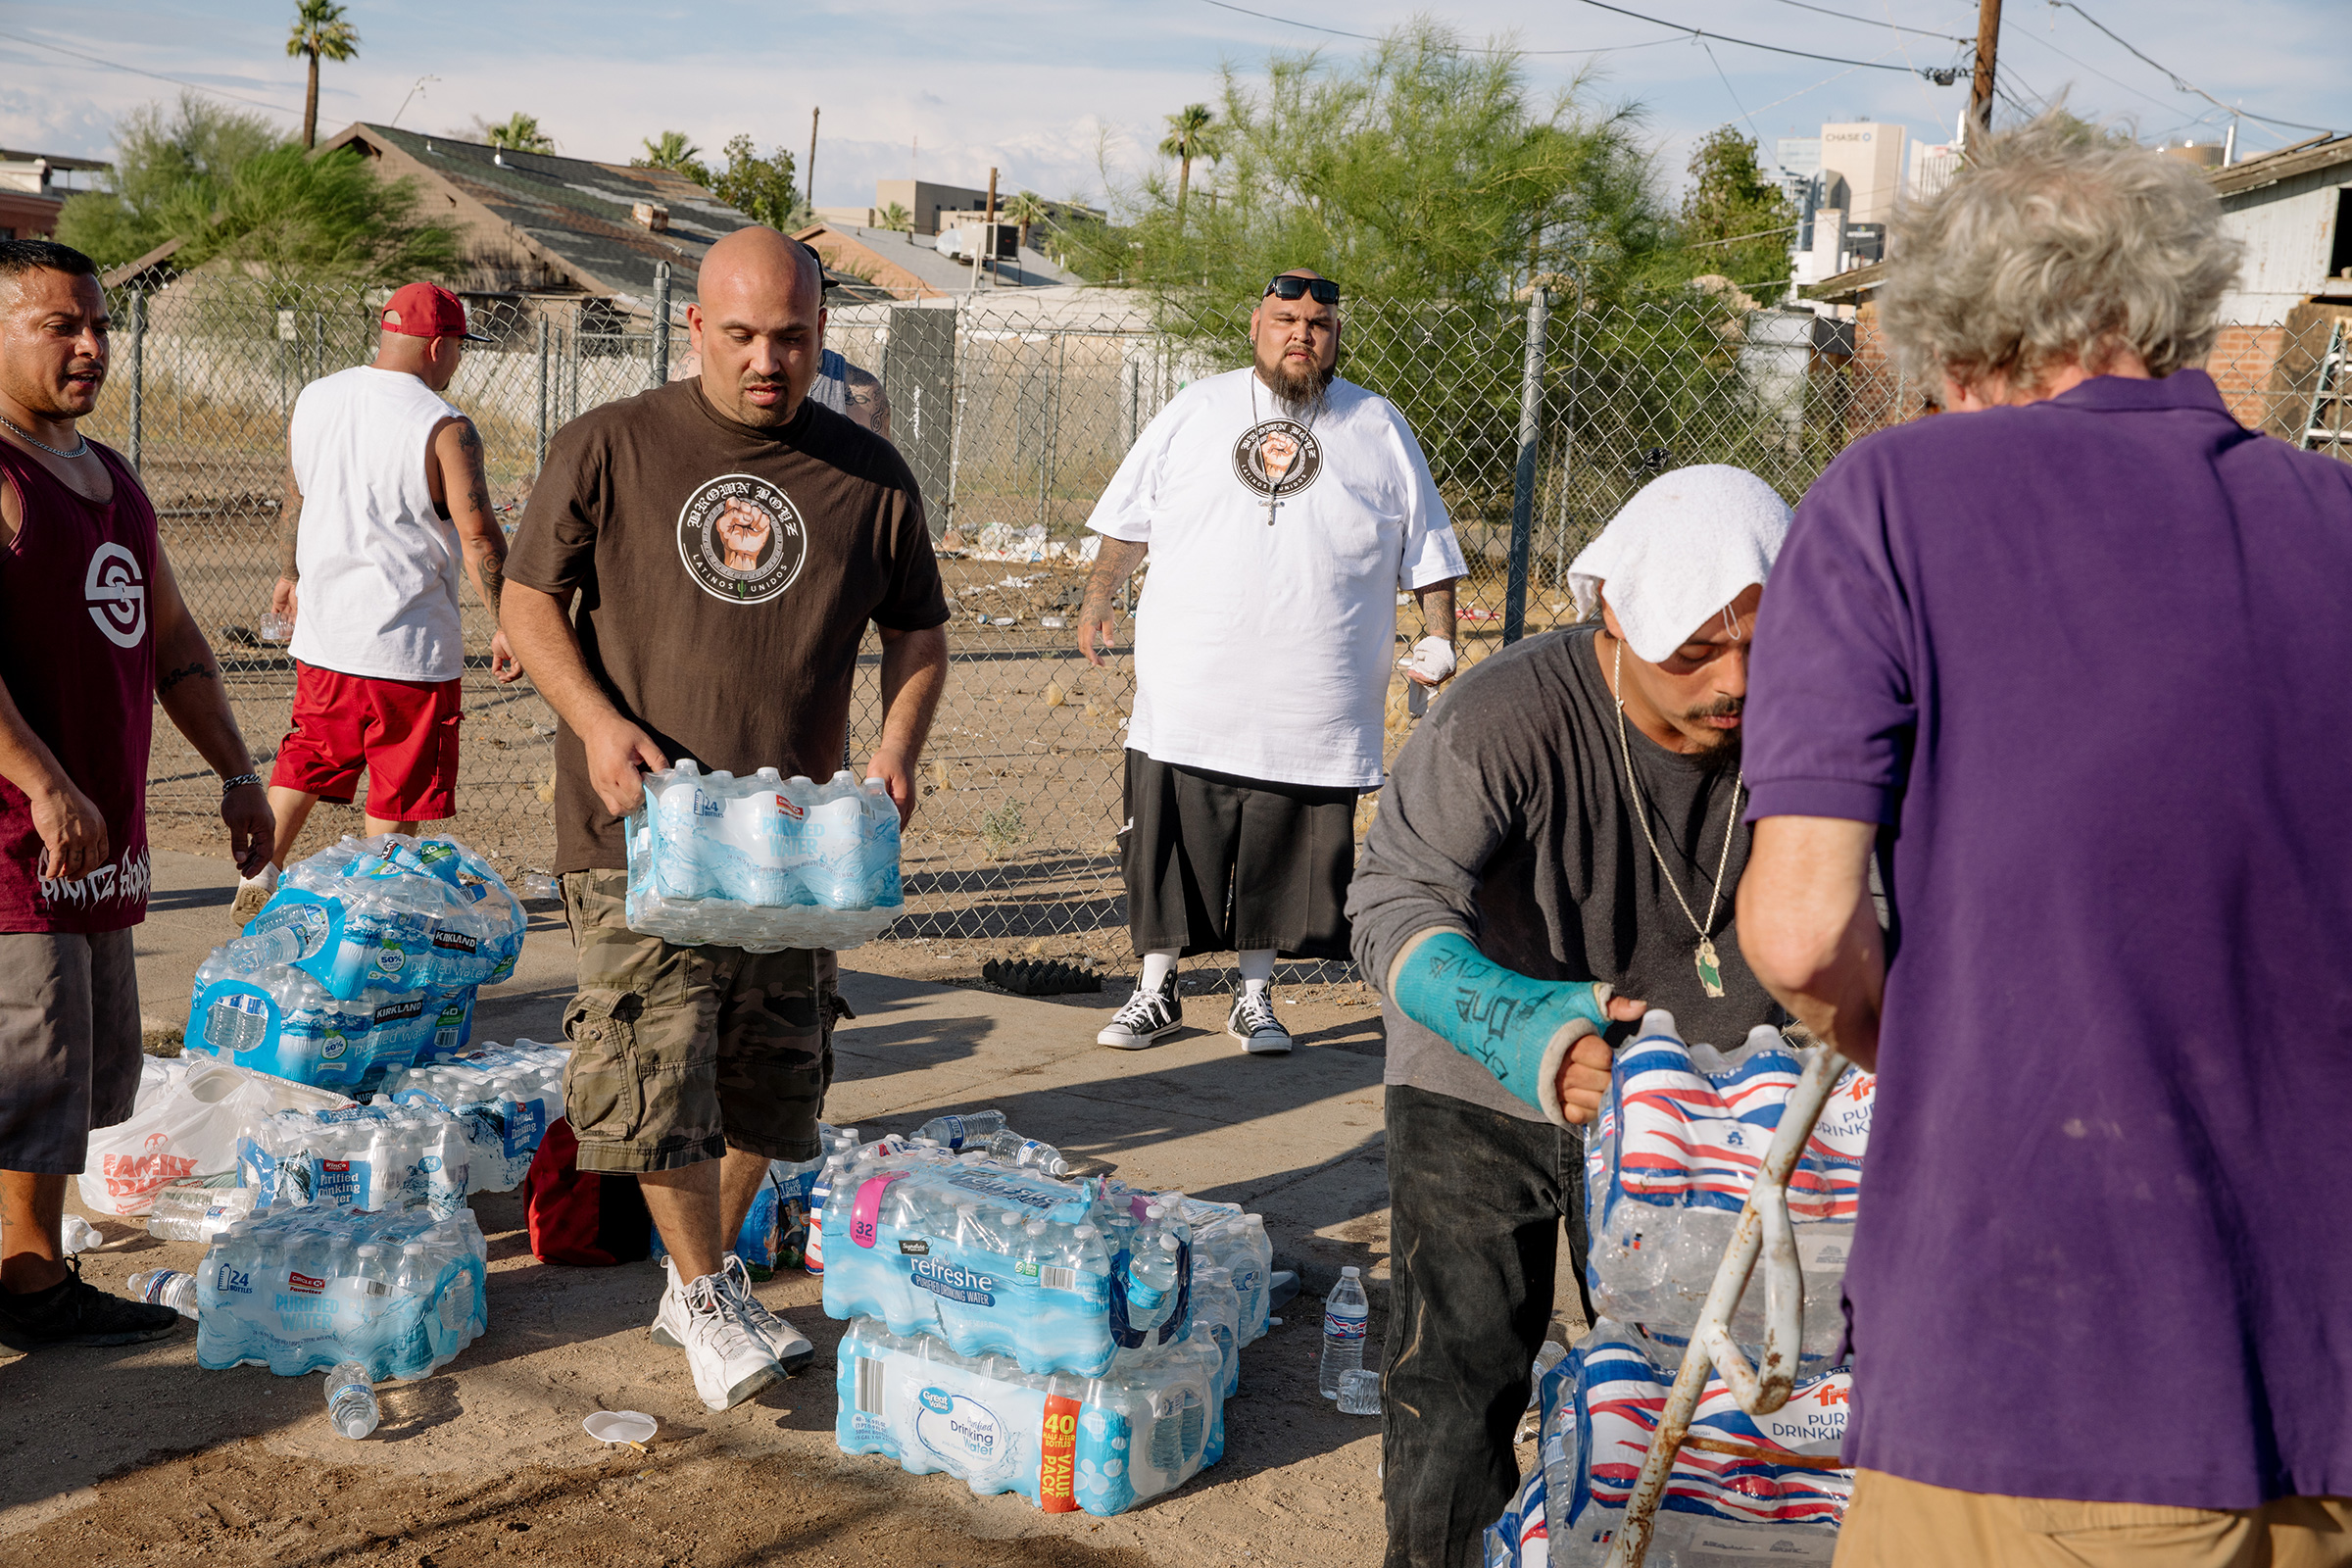 The Brown Boyz music crew distributes water and barbeque to people experiencing homelessness during an excessive heat advisory on July 13, 2019 in Phoenix, Ariz.